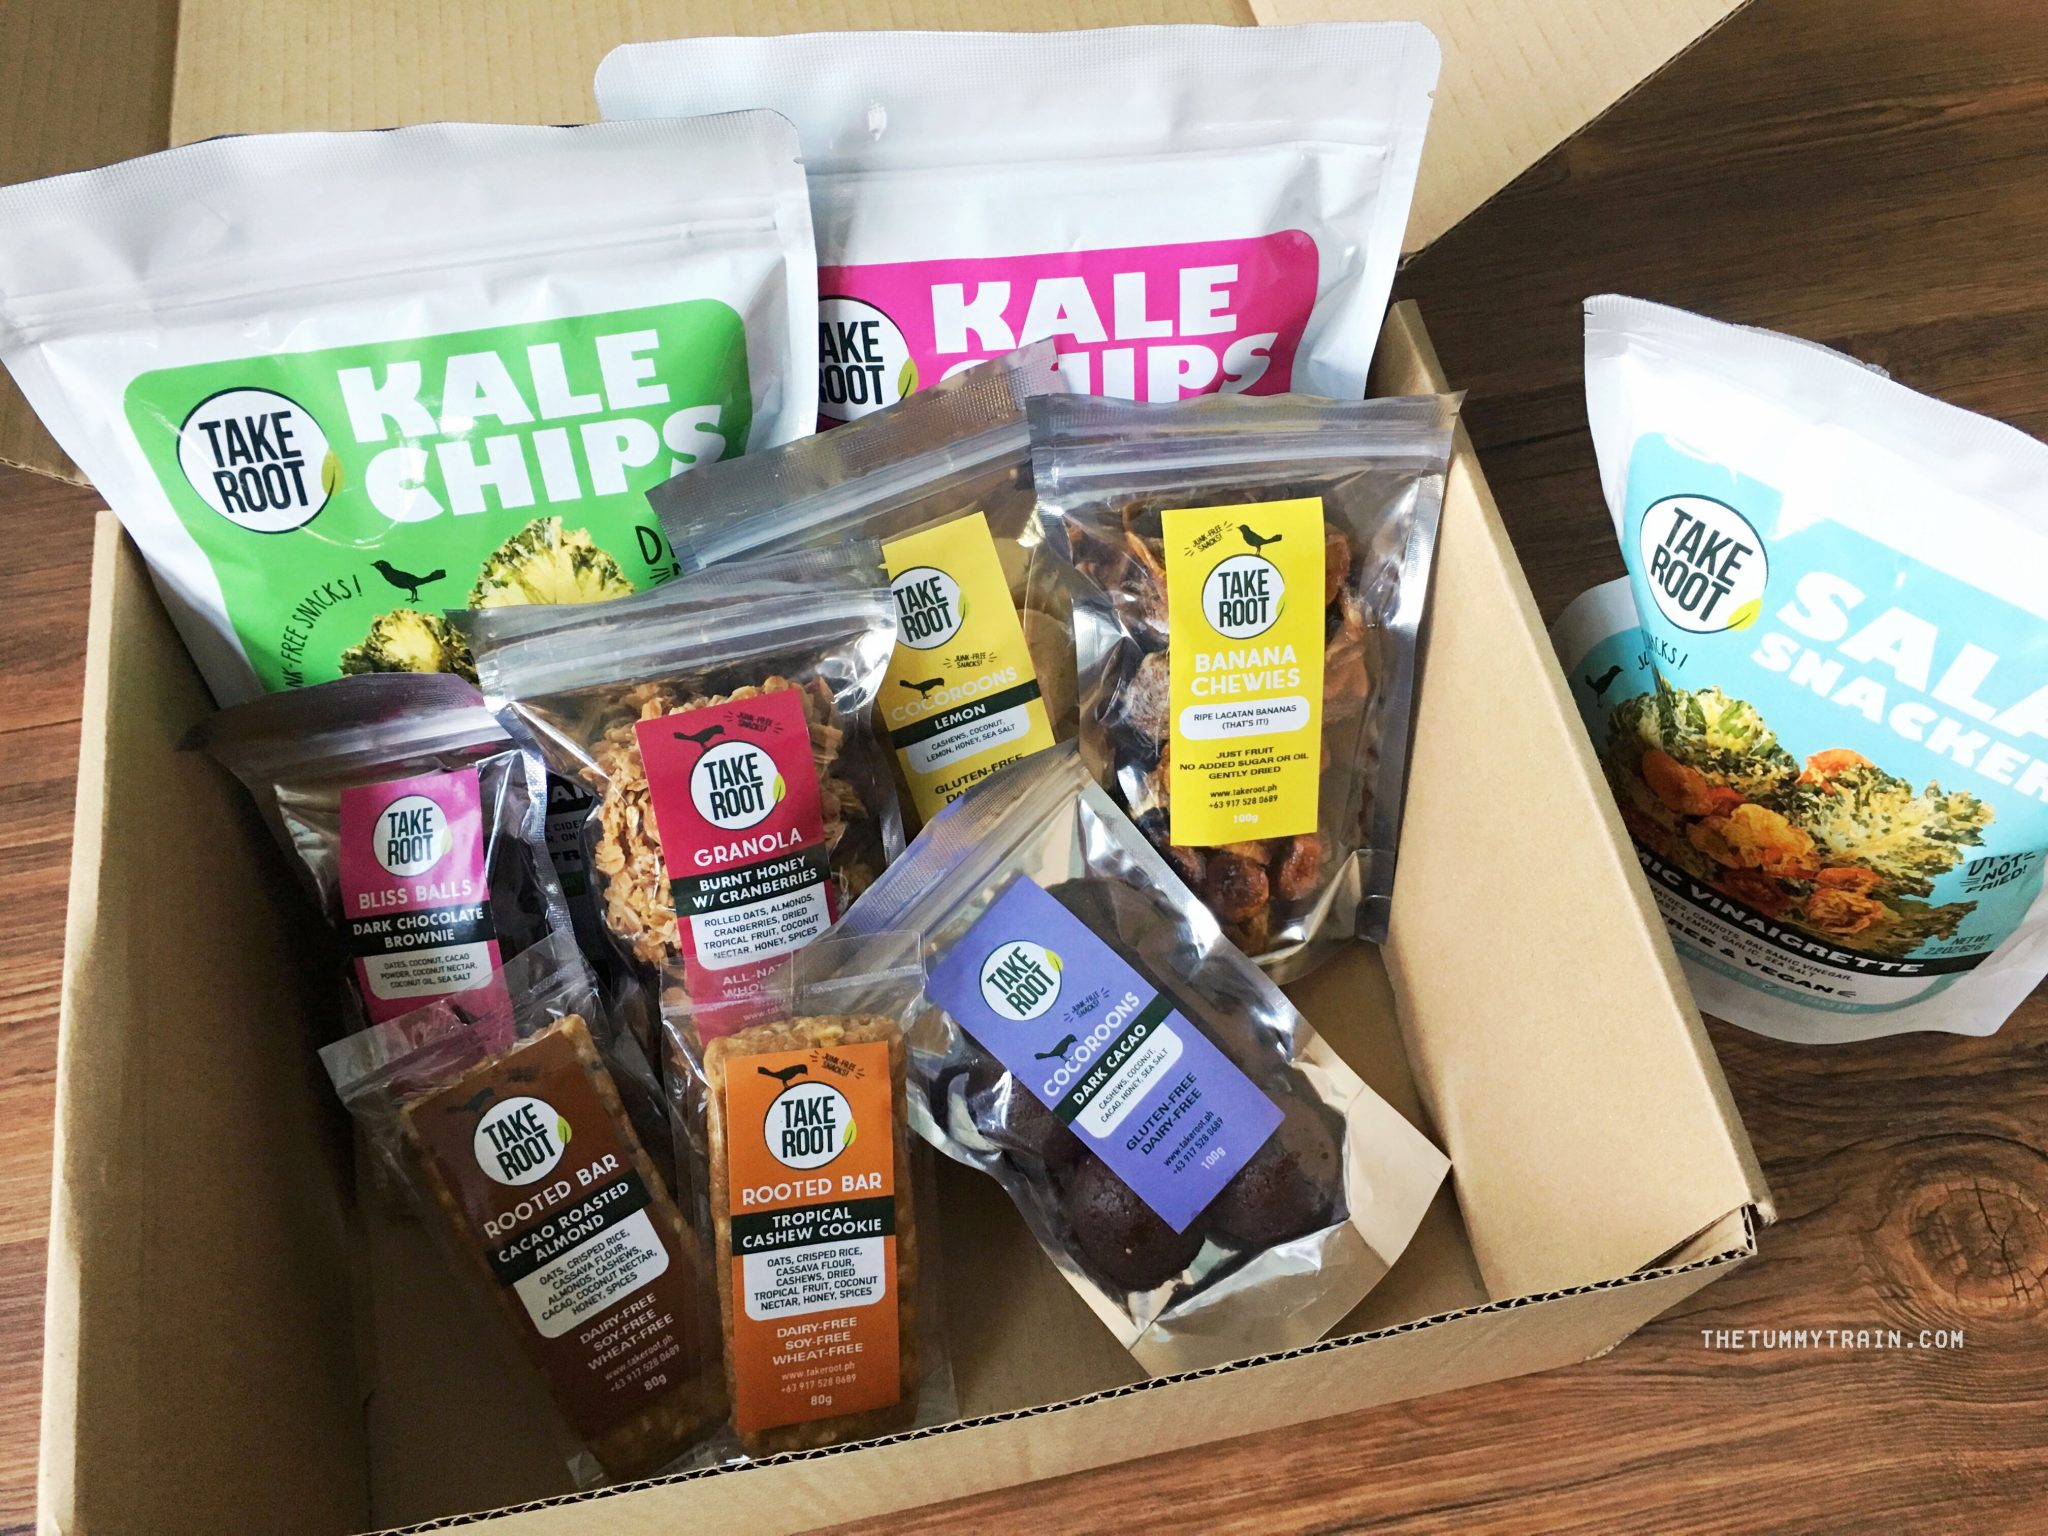 Take Root 1 - Eat or Retreat: Take Root Healthy Snacks is taking off with my heart